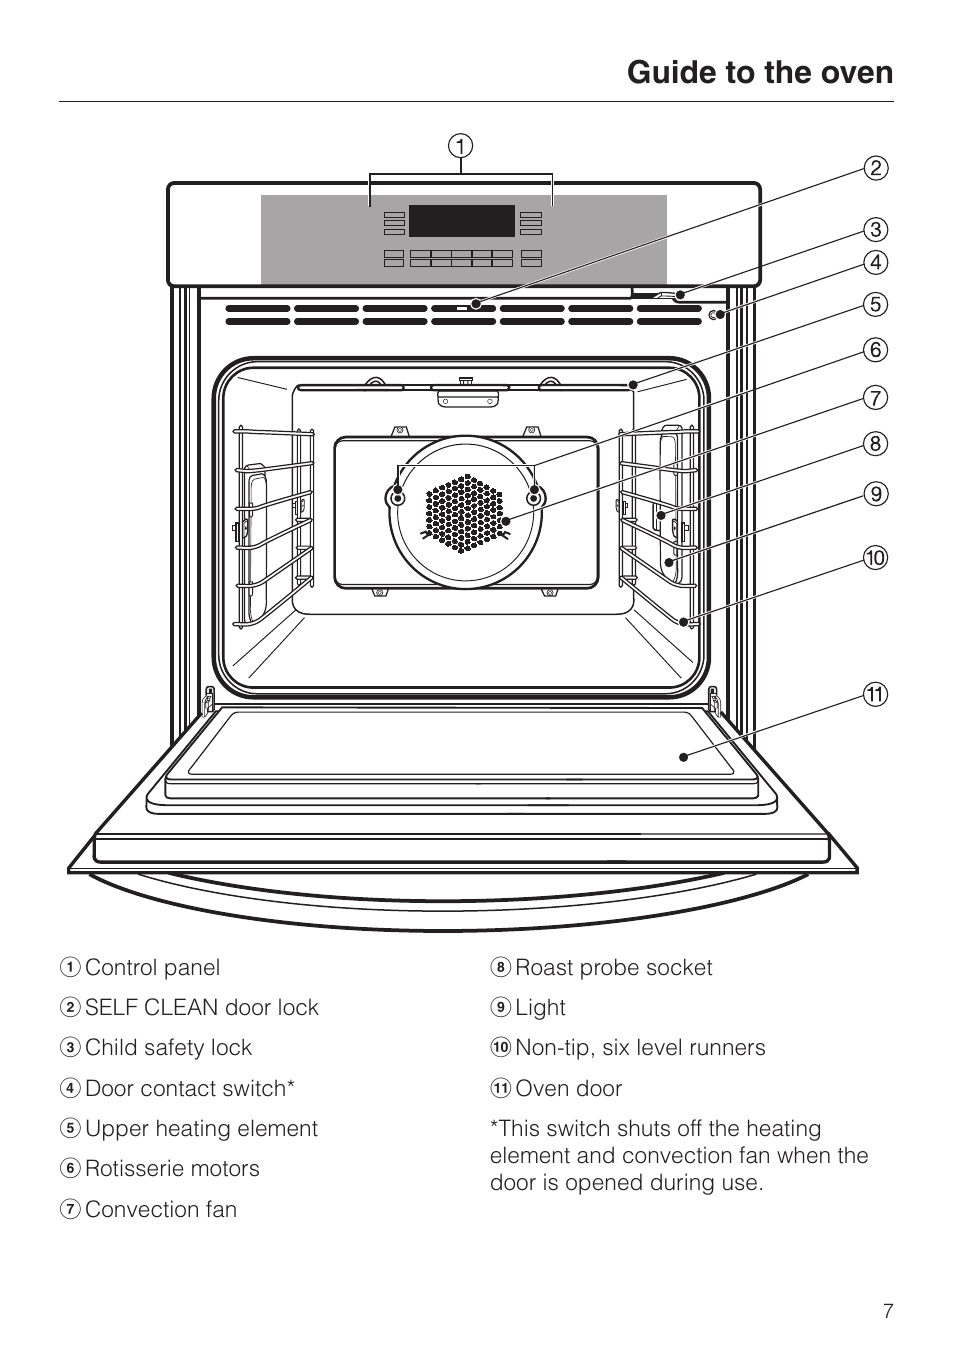 miele oven manual expert user guide u2022 rh manualguidestudio today Miele Ovens vs Wolf Ovens Miele Ovens vs Wolf Ovens